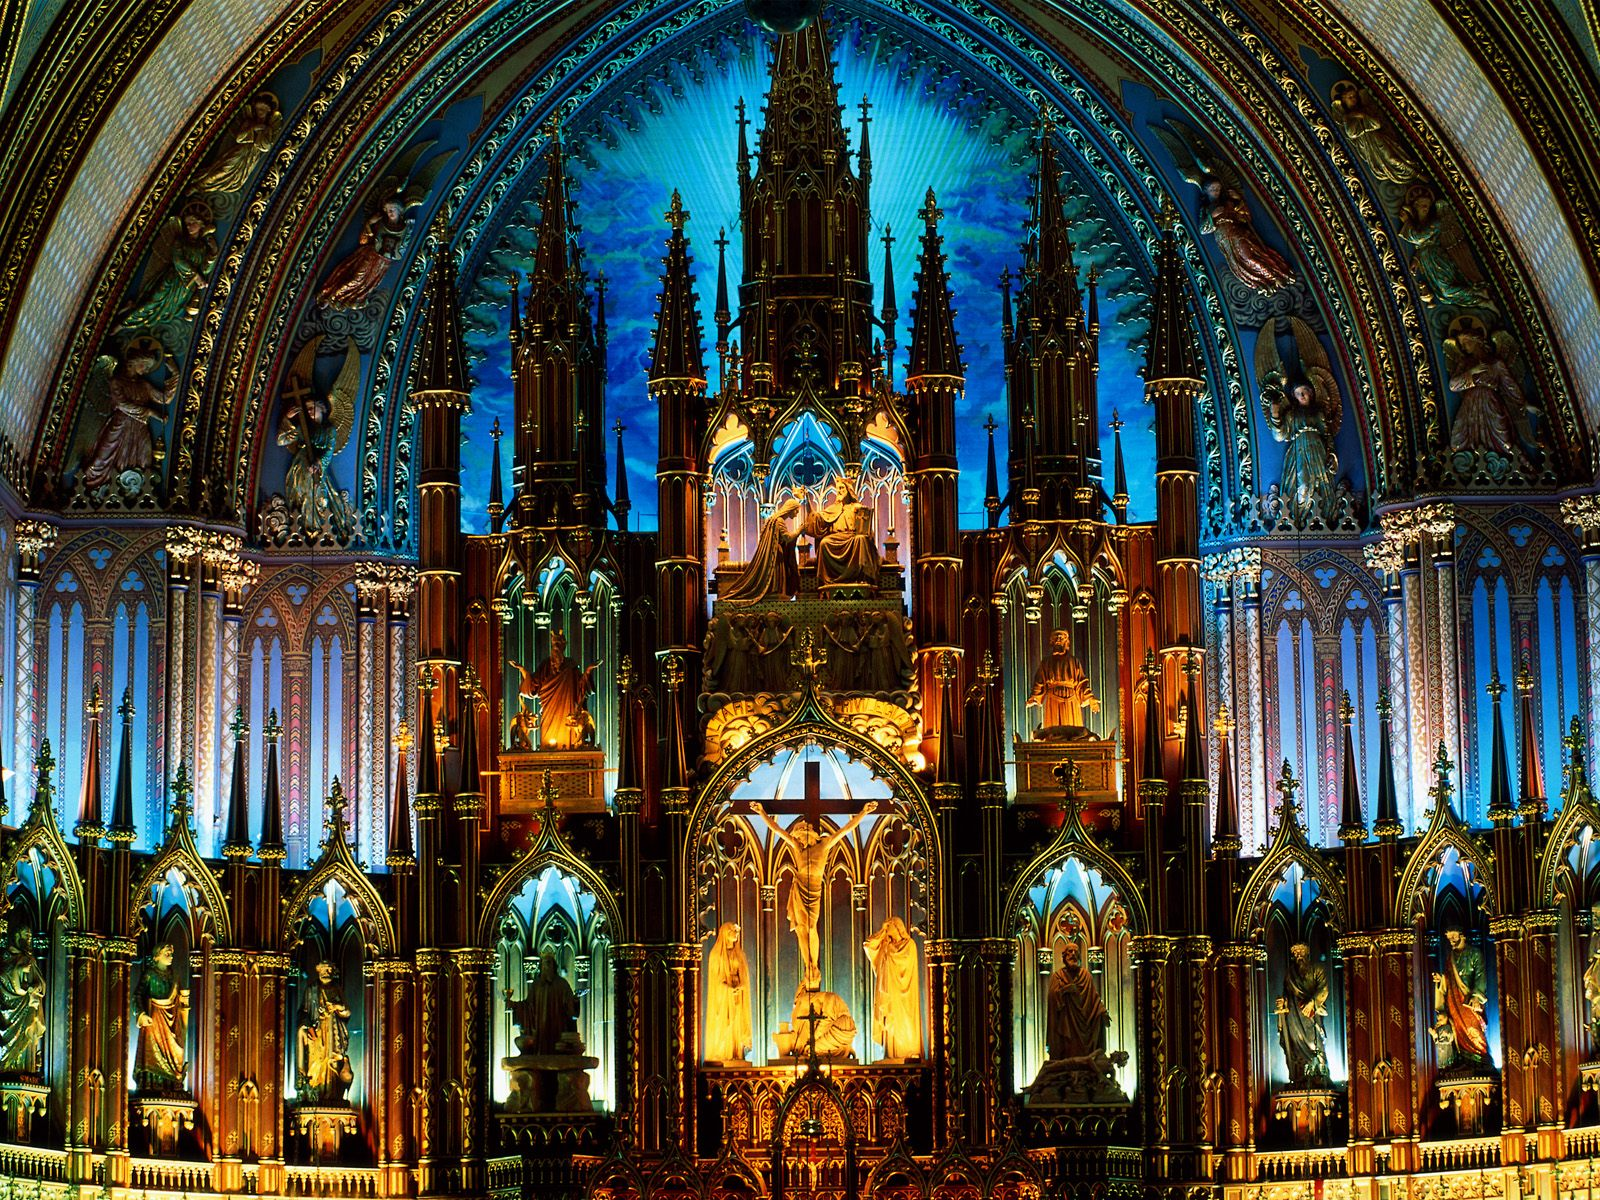 40 Notre Dame Cathedral Wallpaper On Wallpapersafari